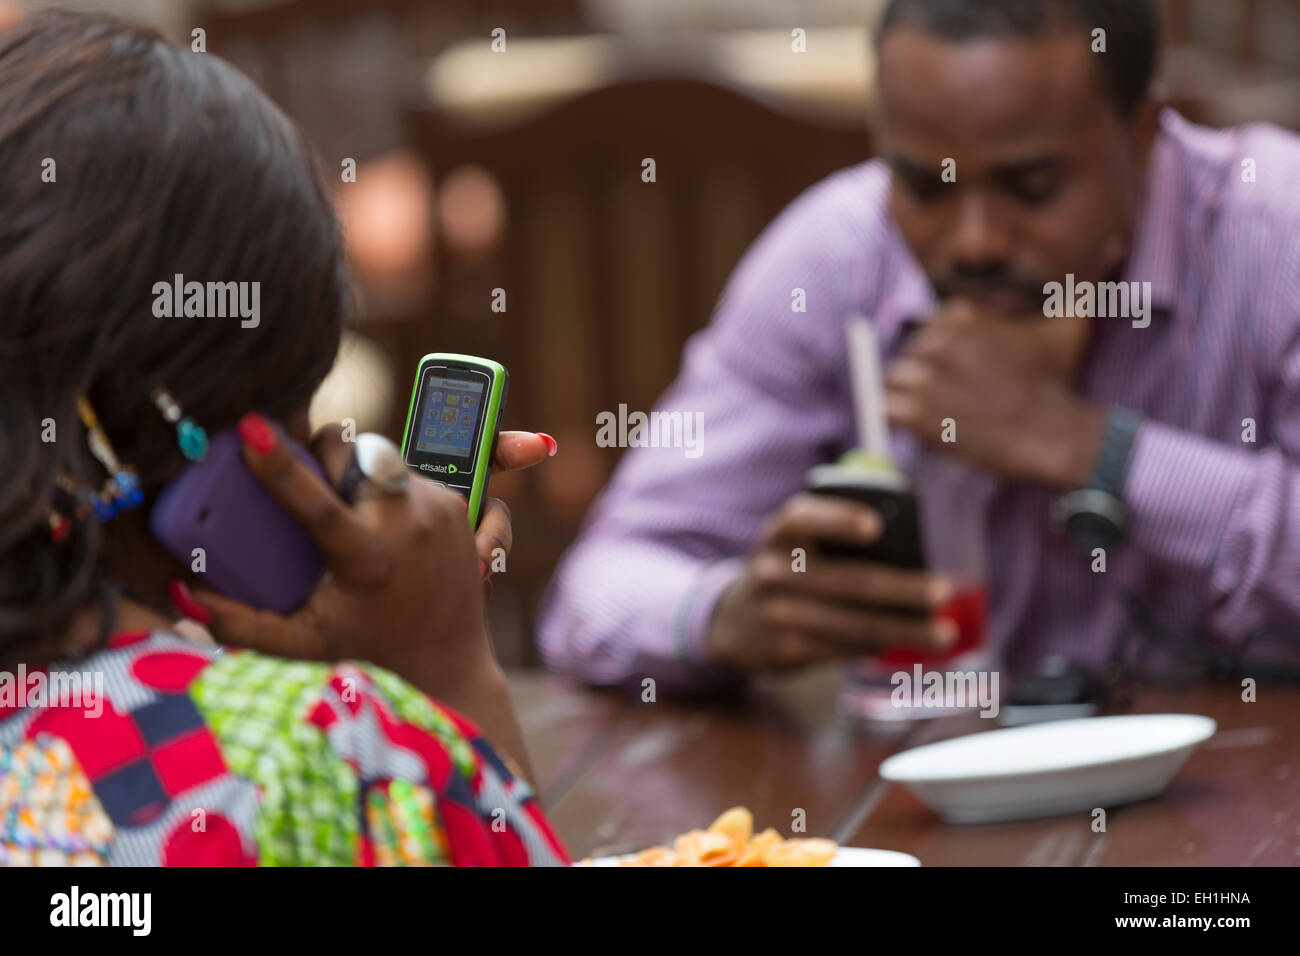 Lagos, Nigeria; A young woman on her mobile phone in an outdoor city restaurant. - Stock Image